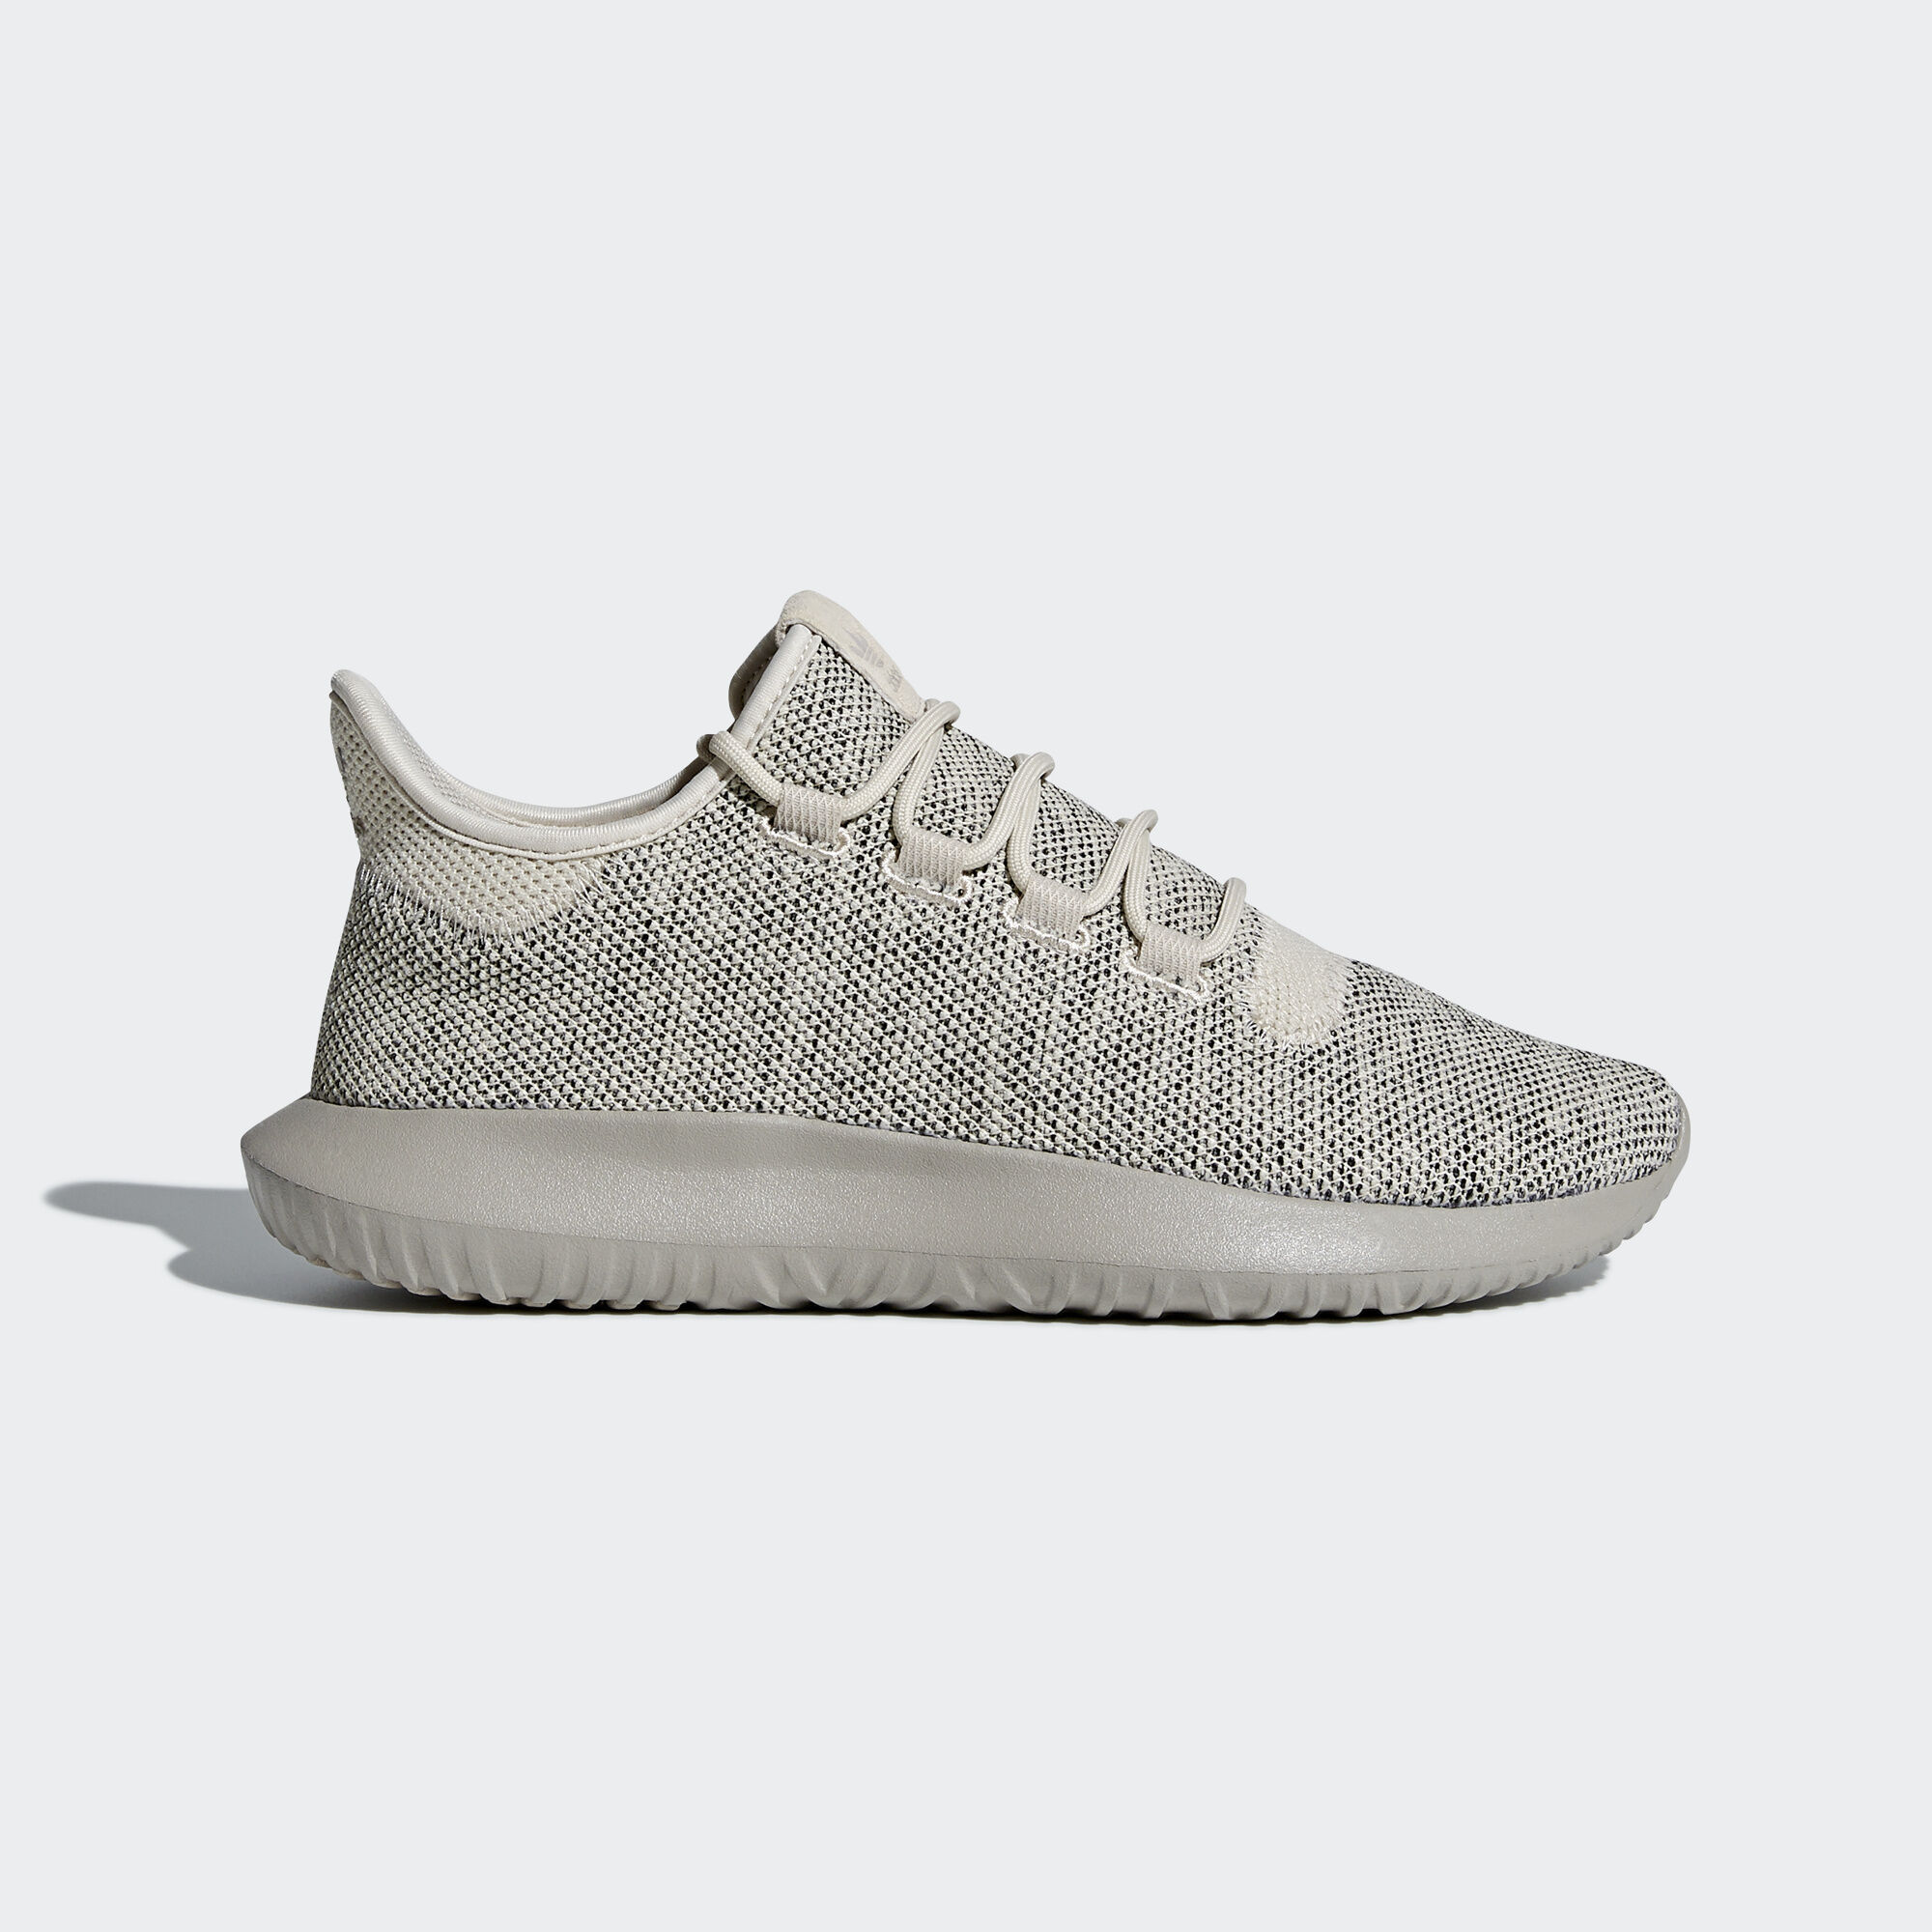 adidas Tubular, Tubular Shadow at PacSun